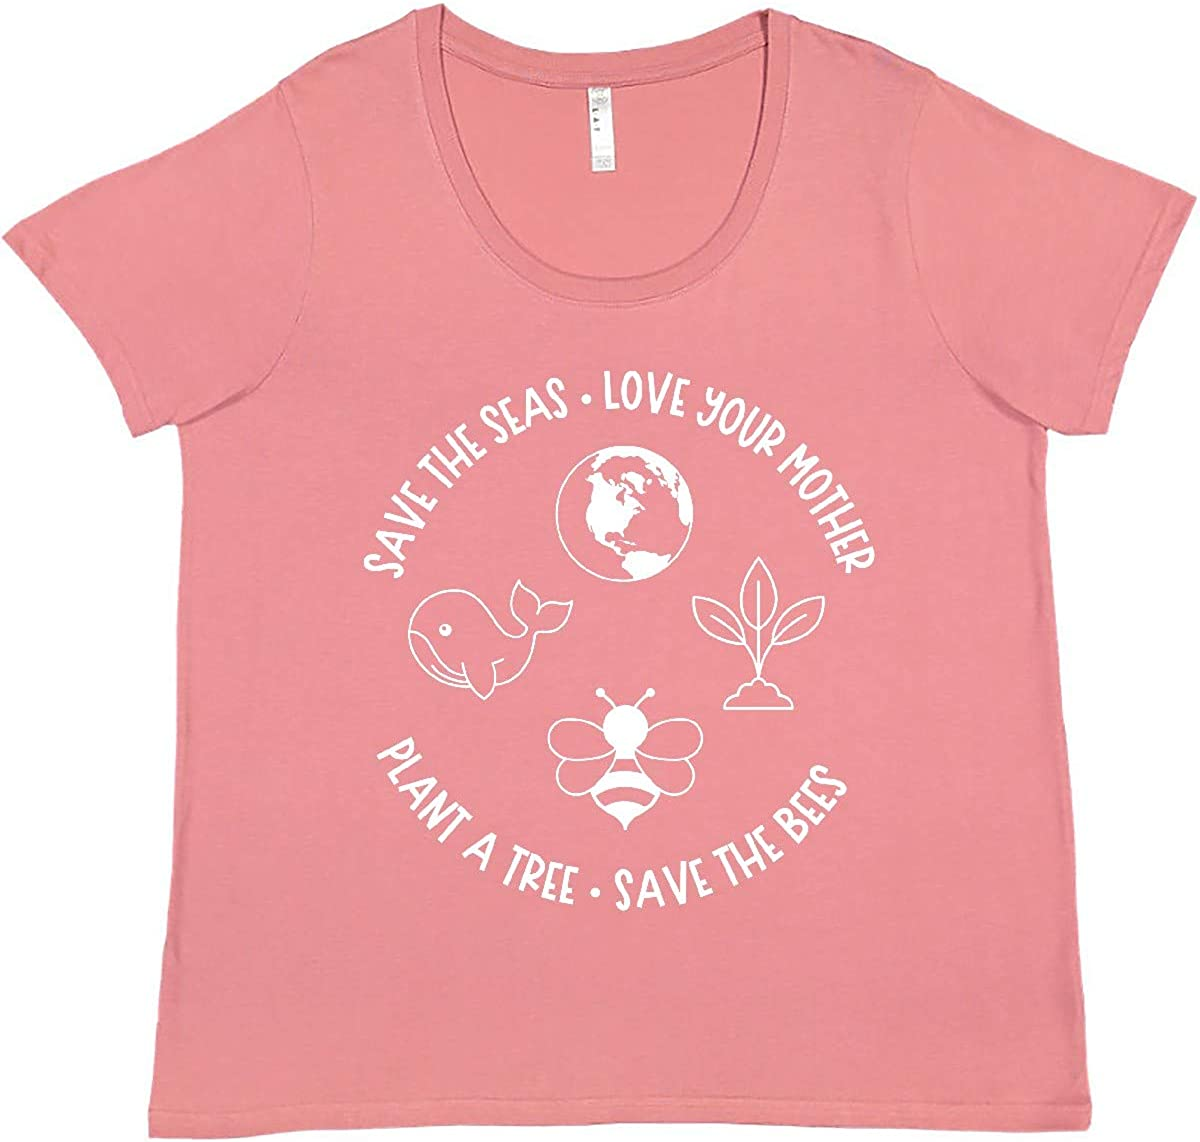 inktastic Earth Day Save The Seas Love Plus Your Mother Women's Popular New item